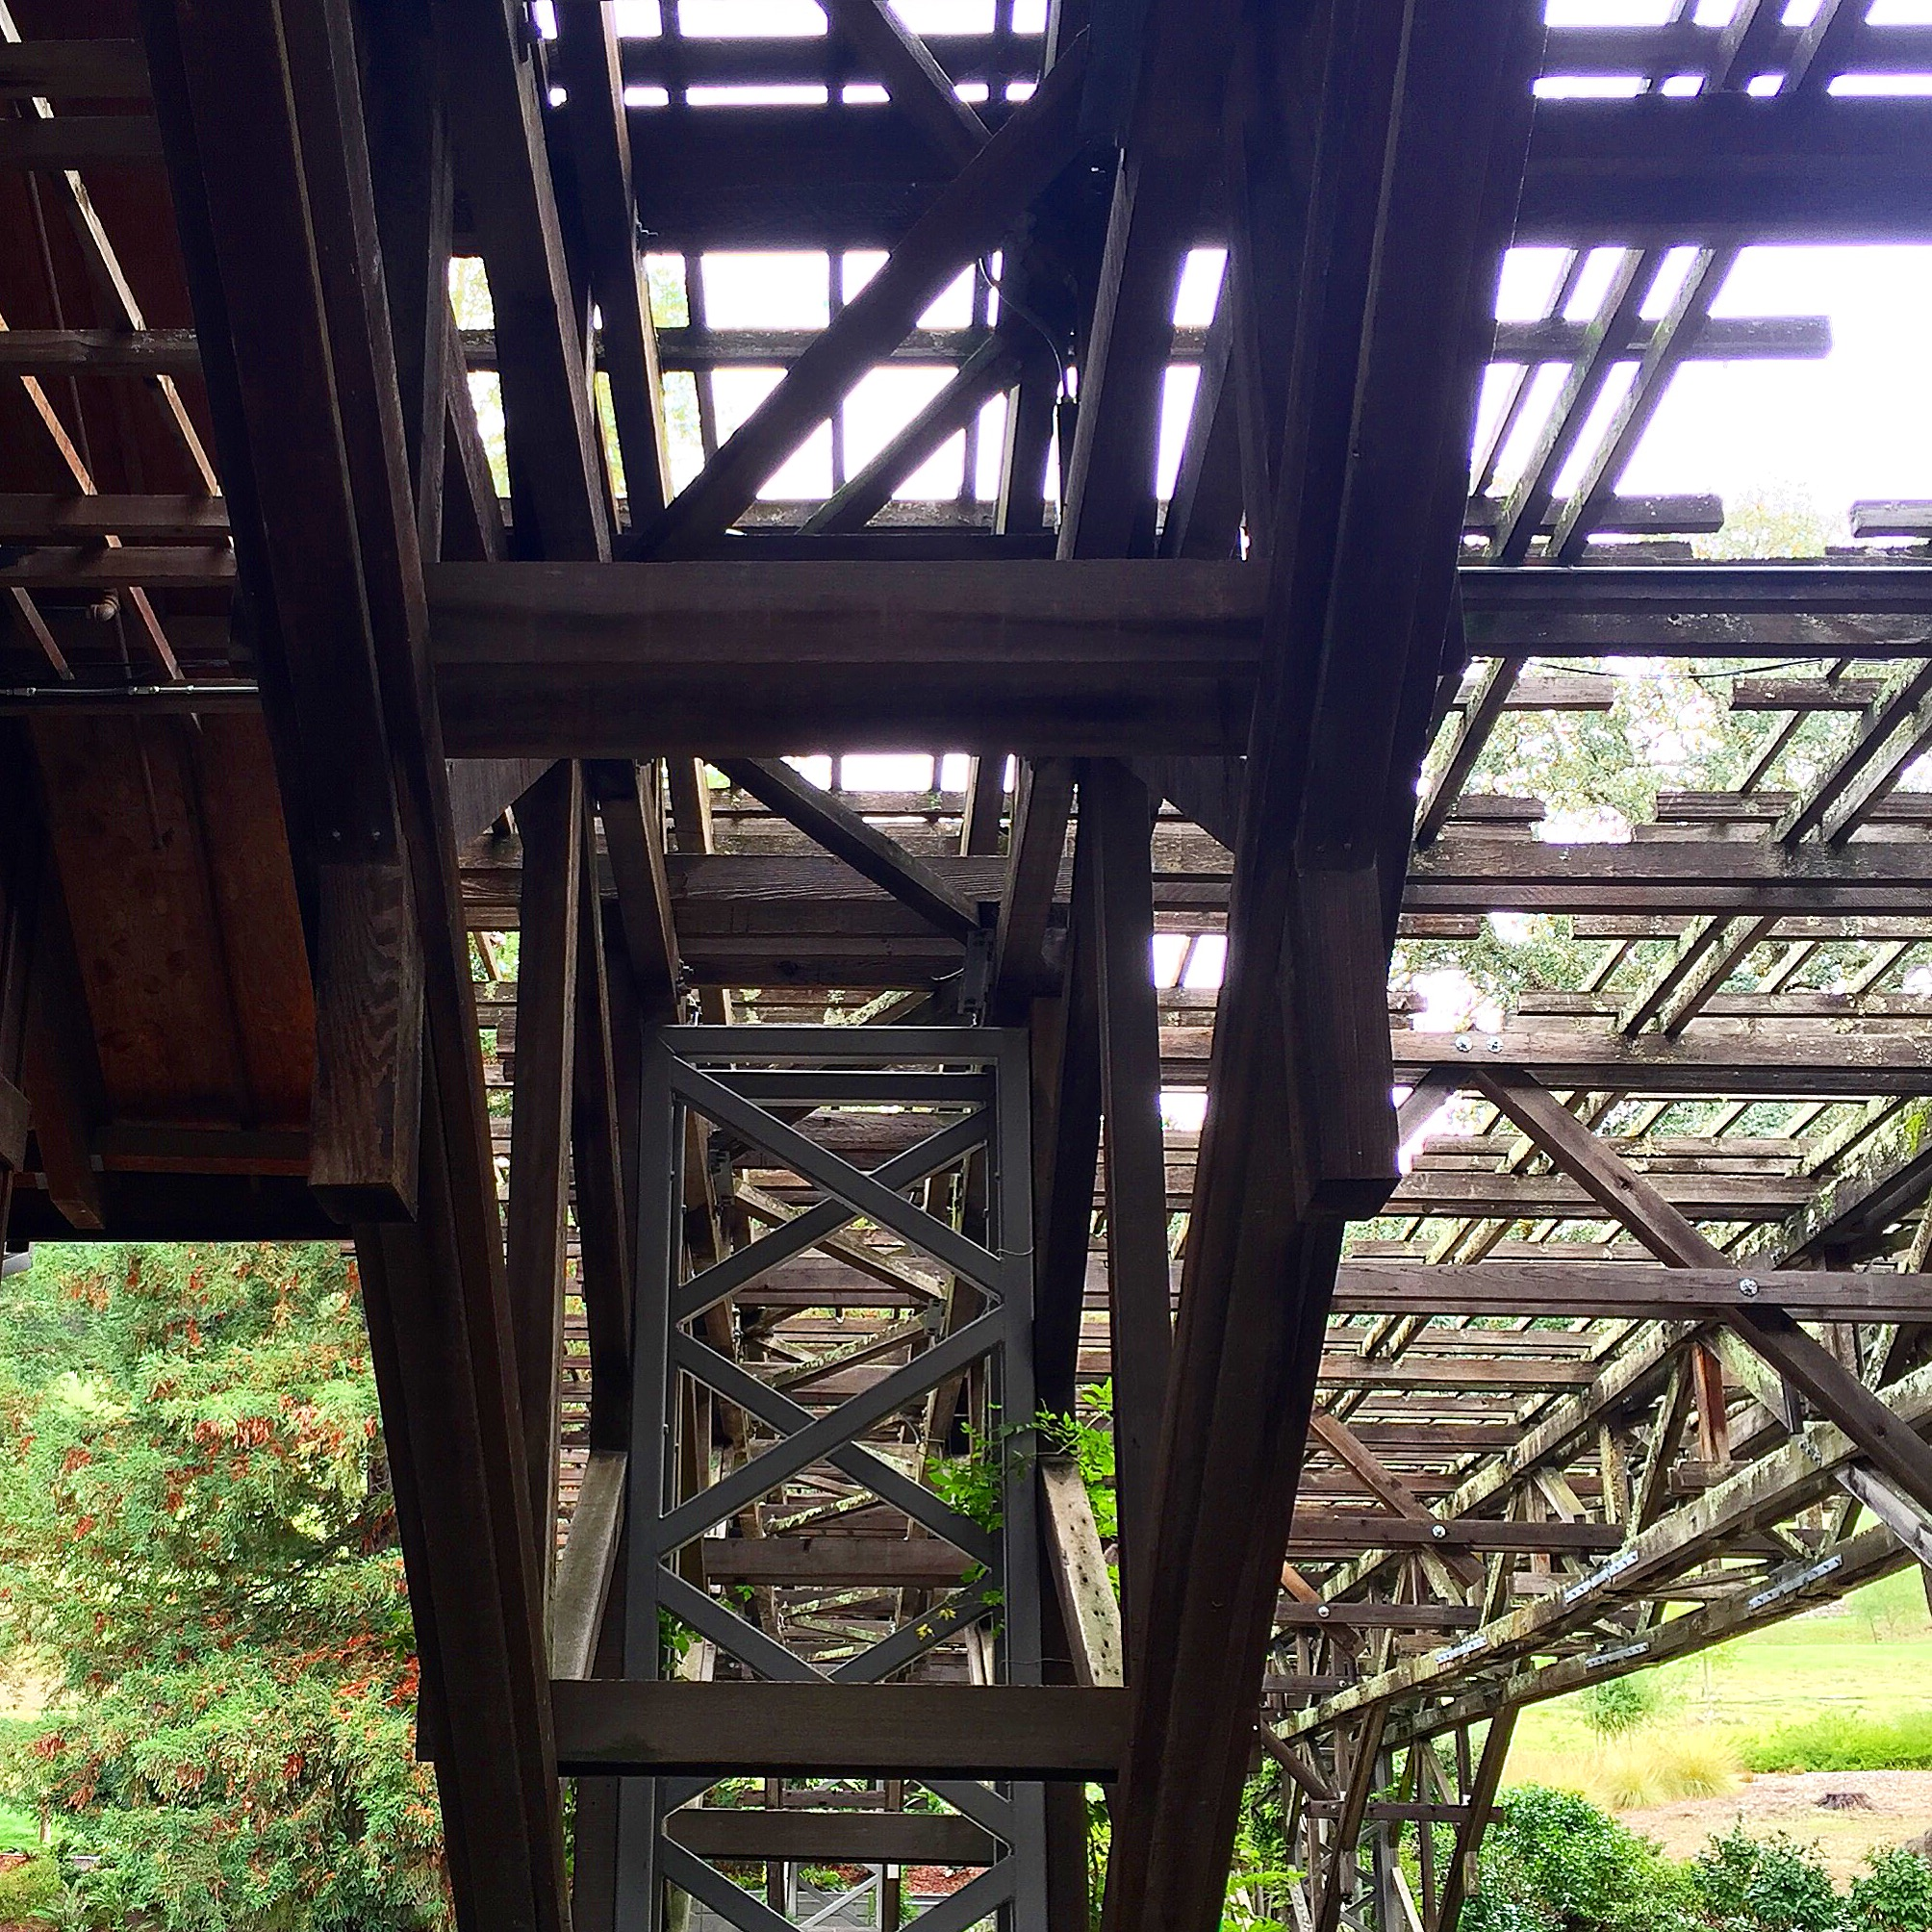 Details of the trellis from the original structure. Joseph Phelps' commitment to sustainable practices shows with their approach to the architecture represented here.